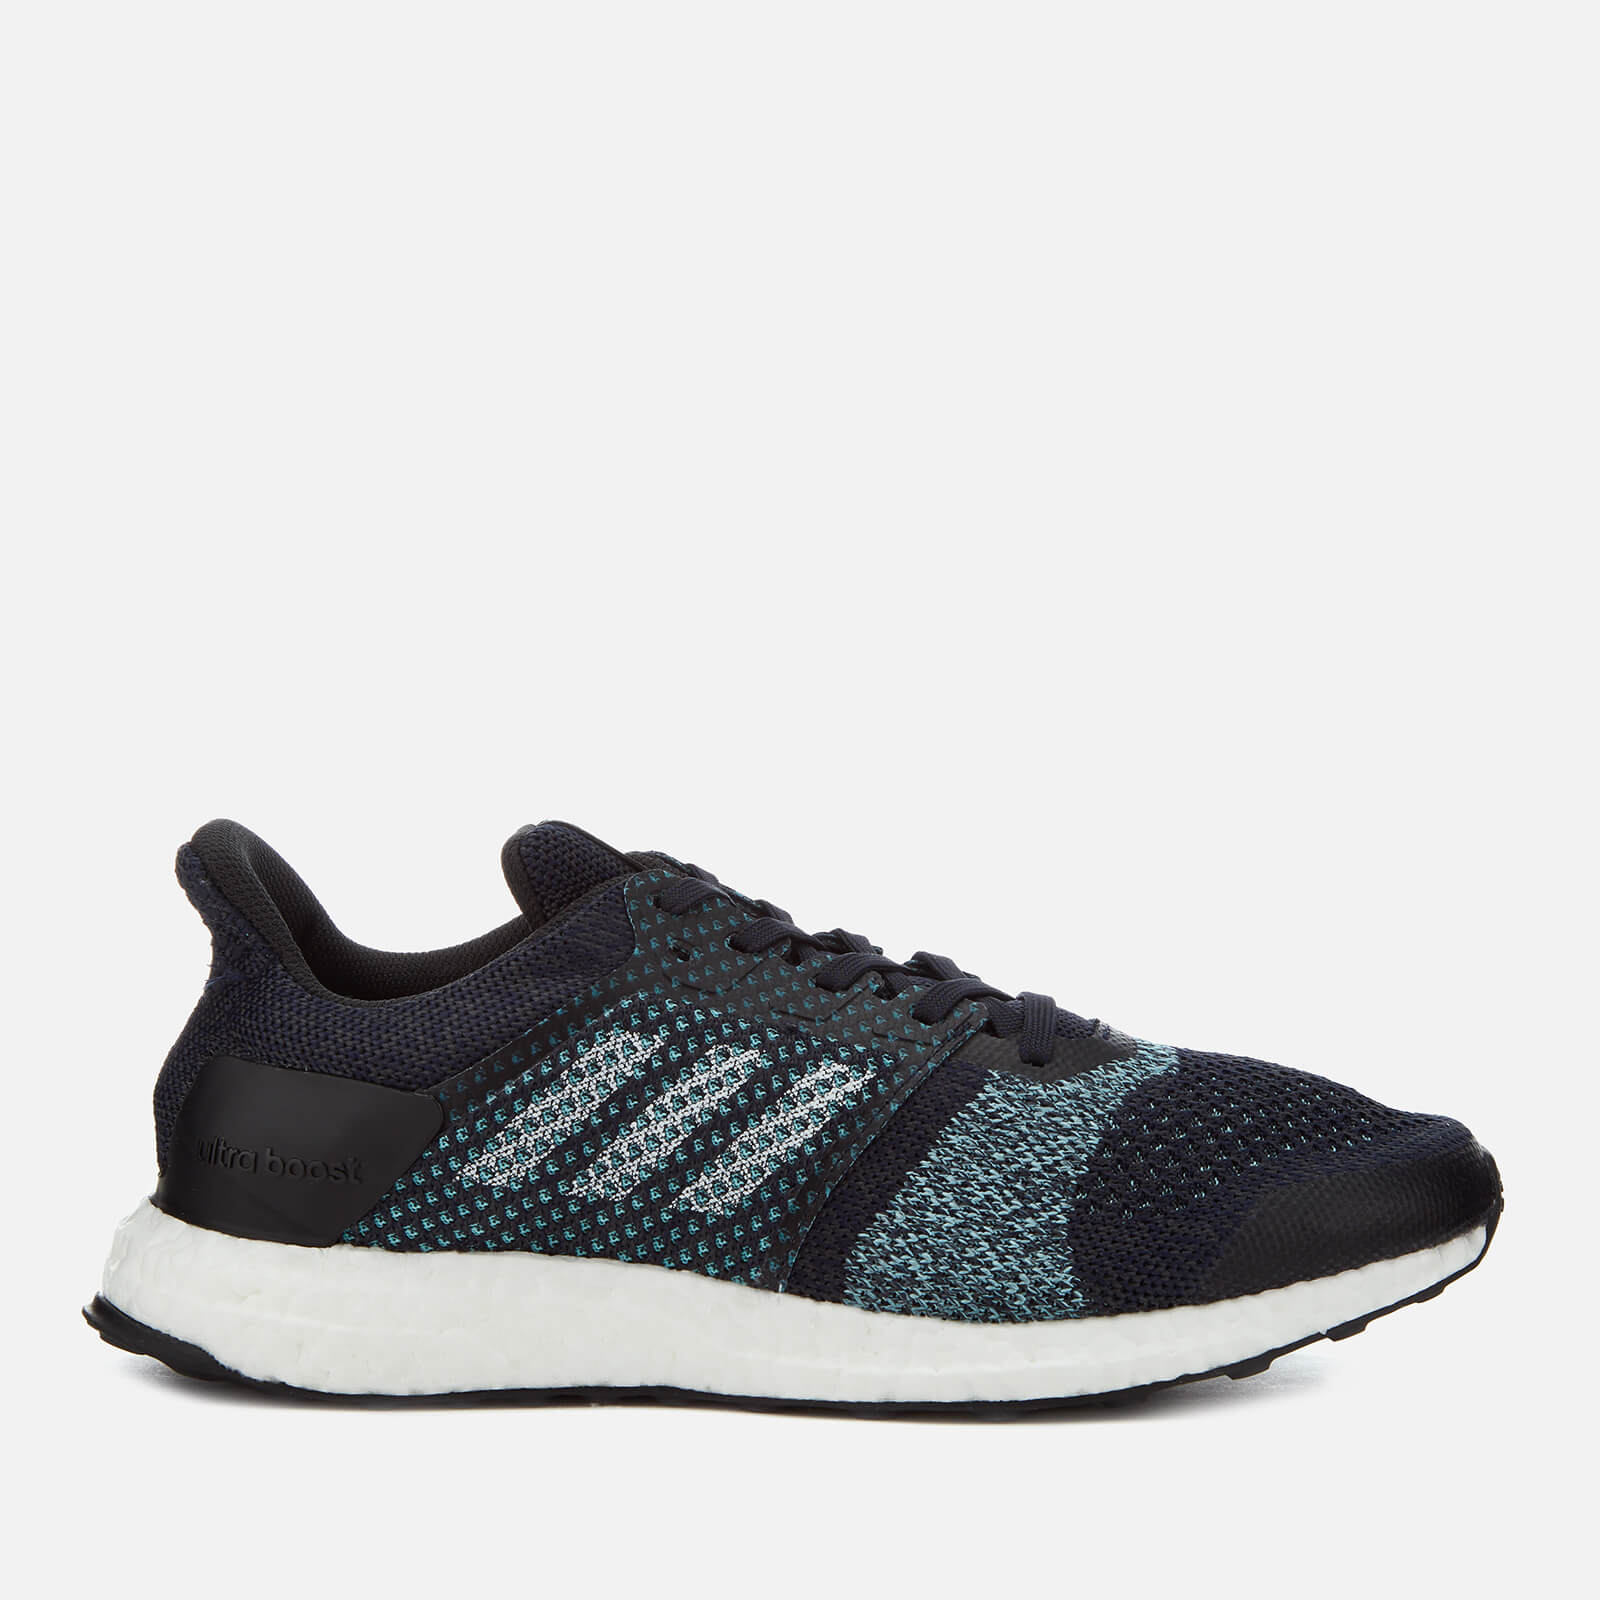 49c97fd3074 adidas Men s Ultraboost Parley Stability Trainers - Legend Ink Sports    Leisure